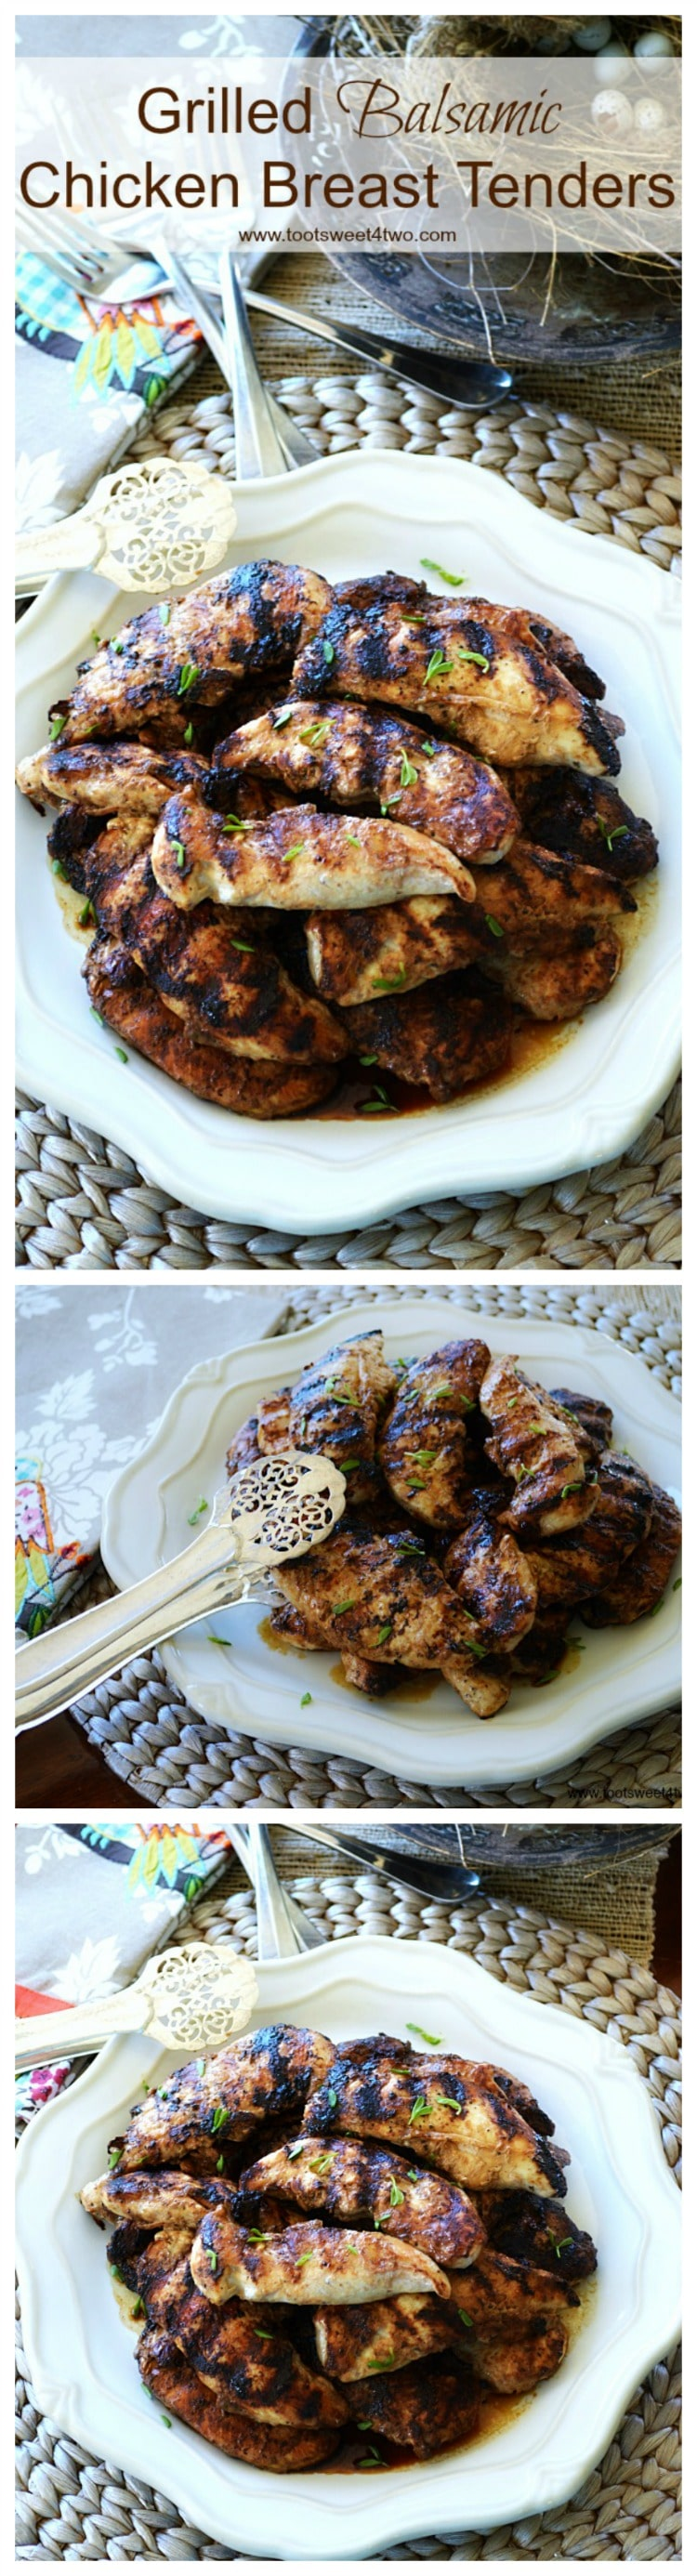 Grilled Balsamic Chicken Breast Tenders are so ridiculously easy to make and delicious! This super simple recipe is a quick and healthy alternative to a fast food dinner any night of the week. Make a batch and keep them in the refrigerator for an instant meal or an easy sandwich or add them to a salad. | www.tootsweet4two.com.